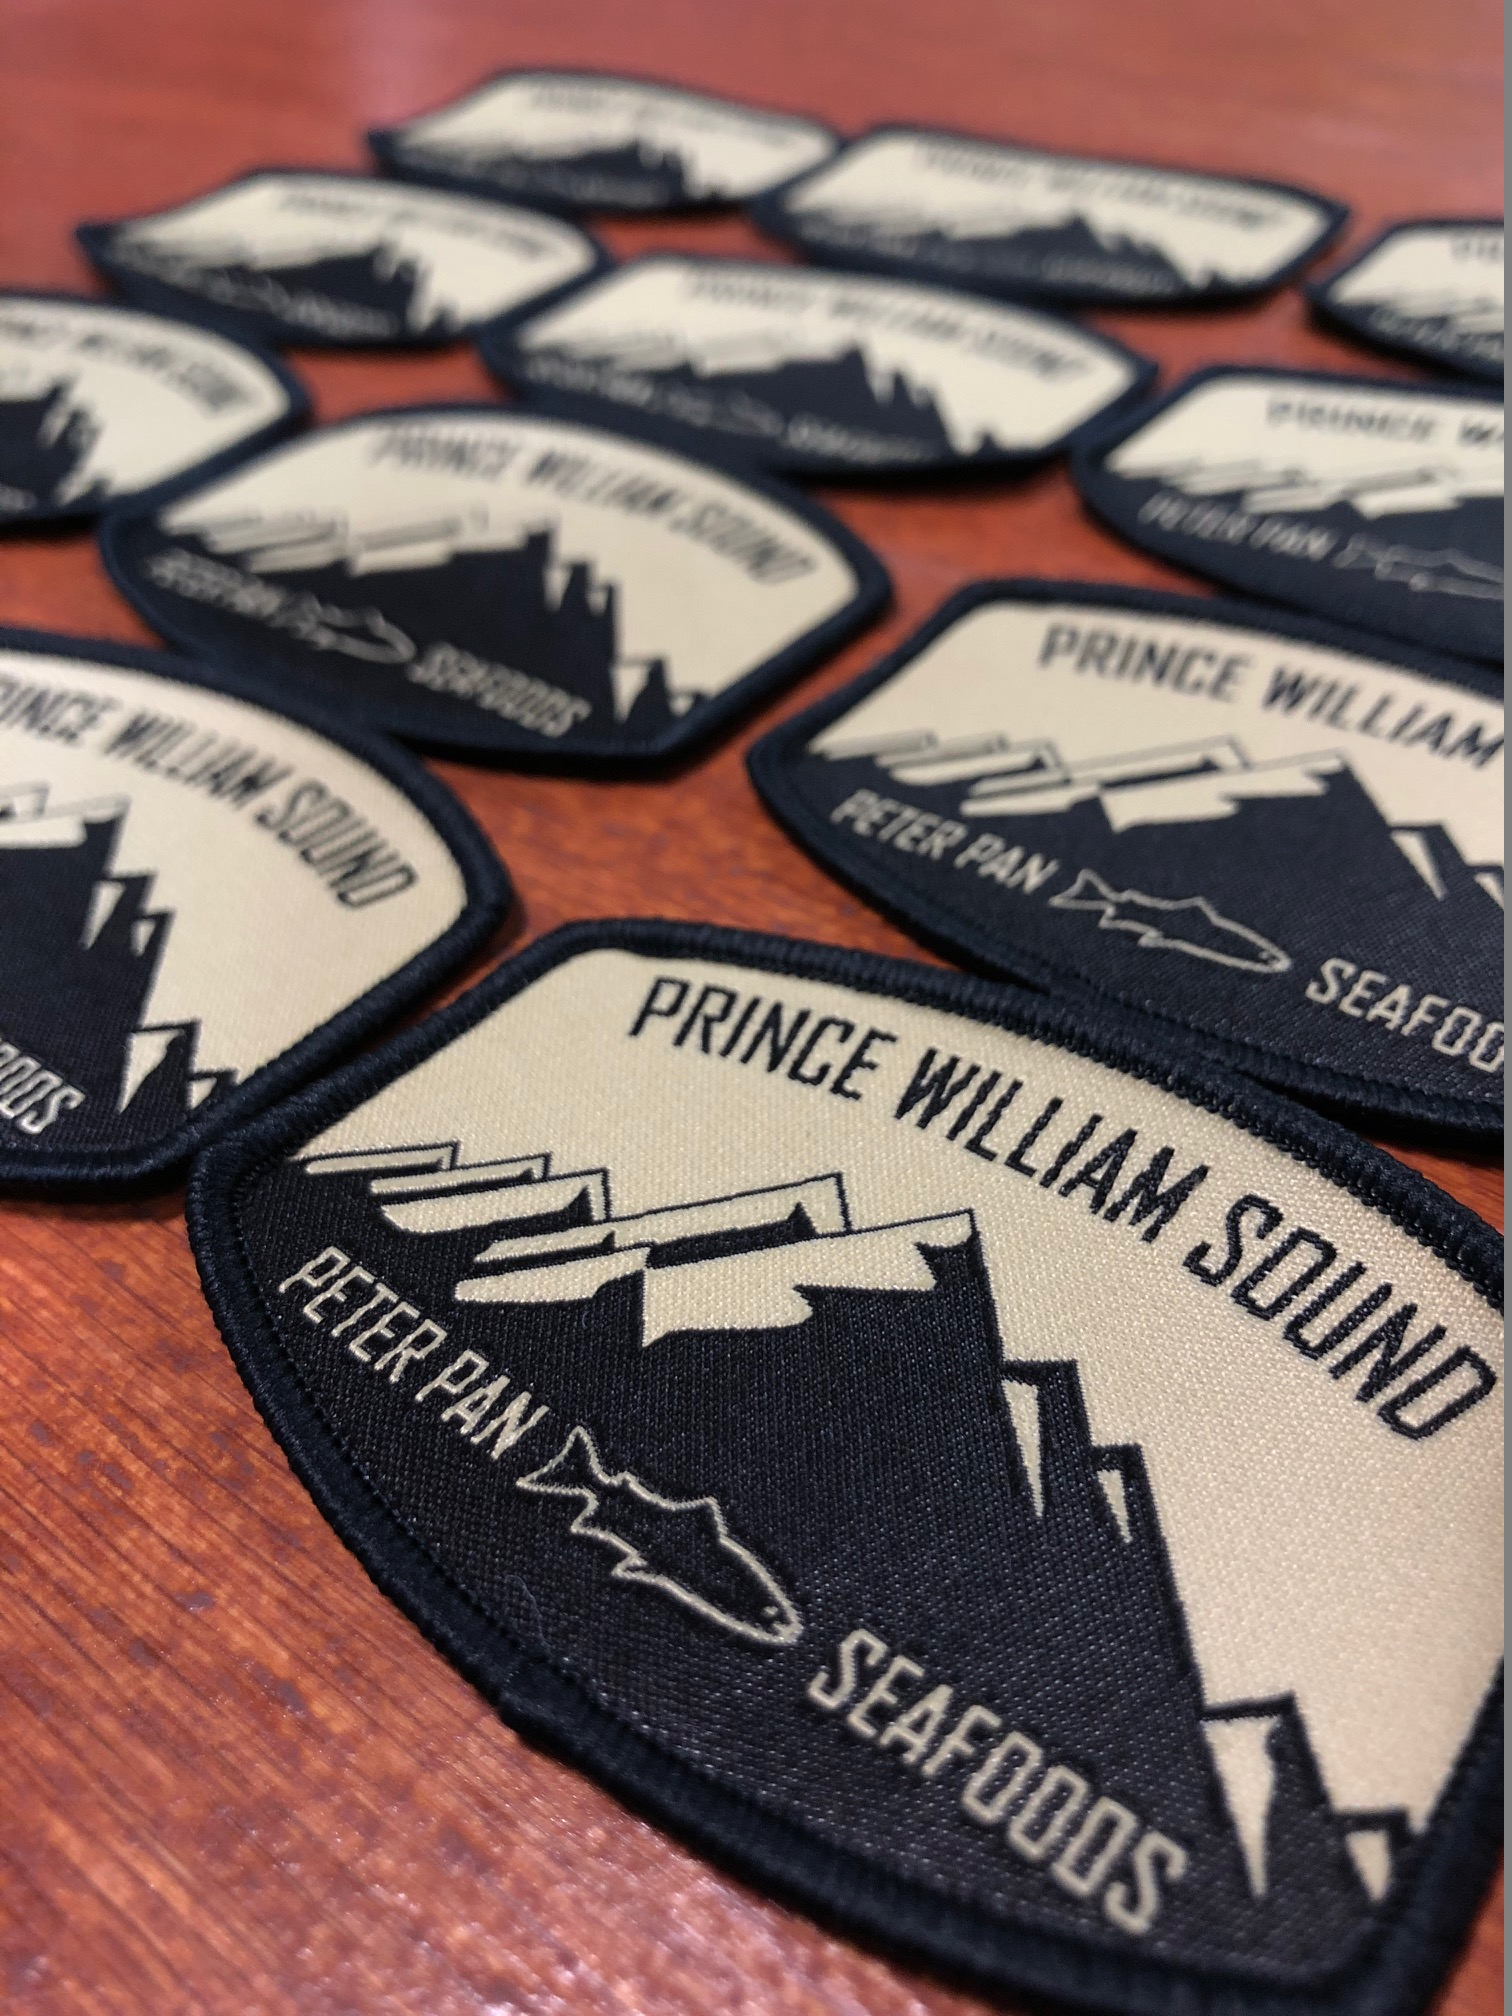 logounltd_laser_etching_embroidery_screen_printing_apparel_uniform_custom_tshirts_kirkland_bellevue_seattle_redmond_woodinville_branded_merchandise_promotional_products_logo_unltd_woven_patches_peter_pan_seafoods (1).jpg